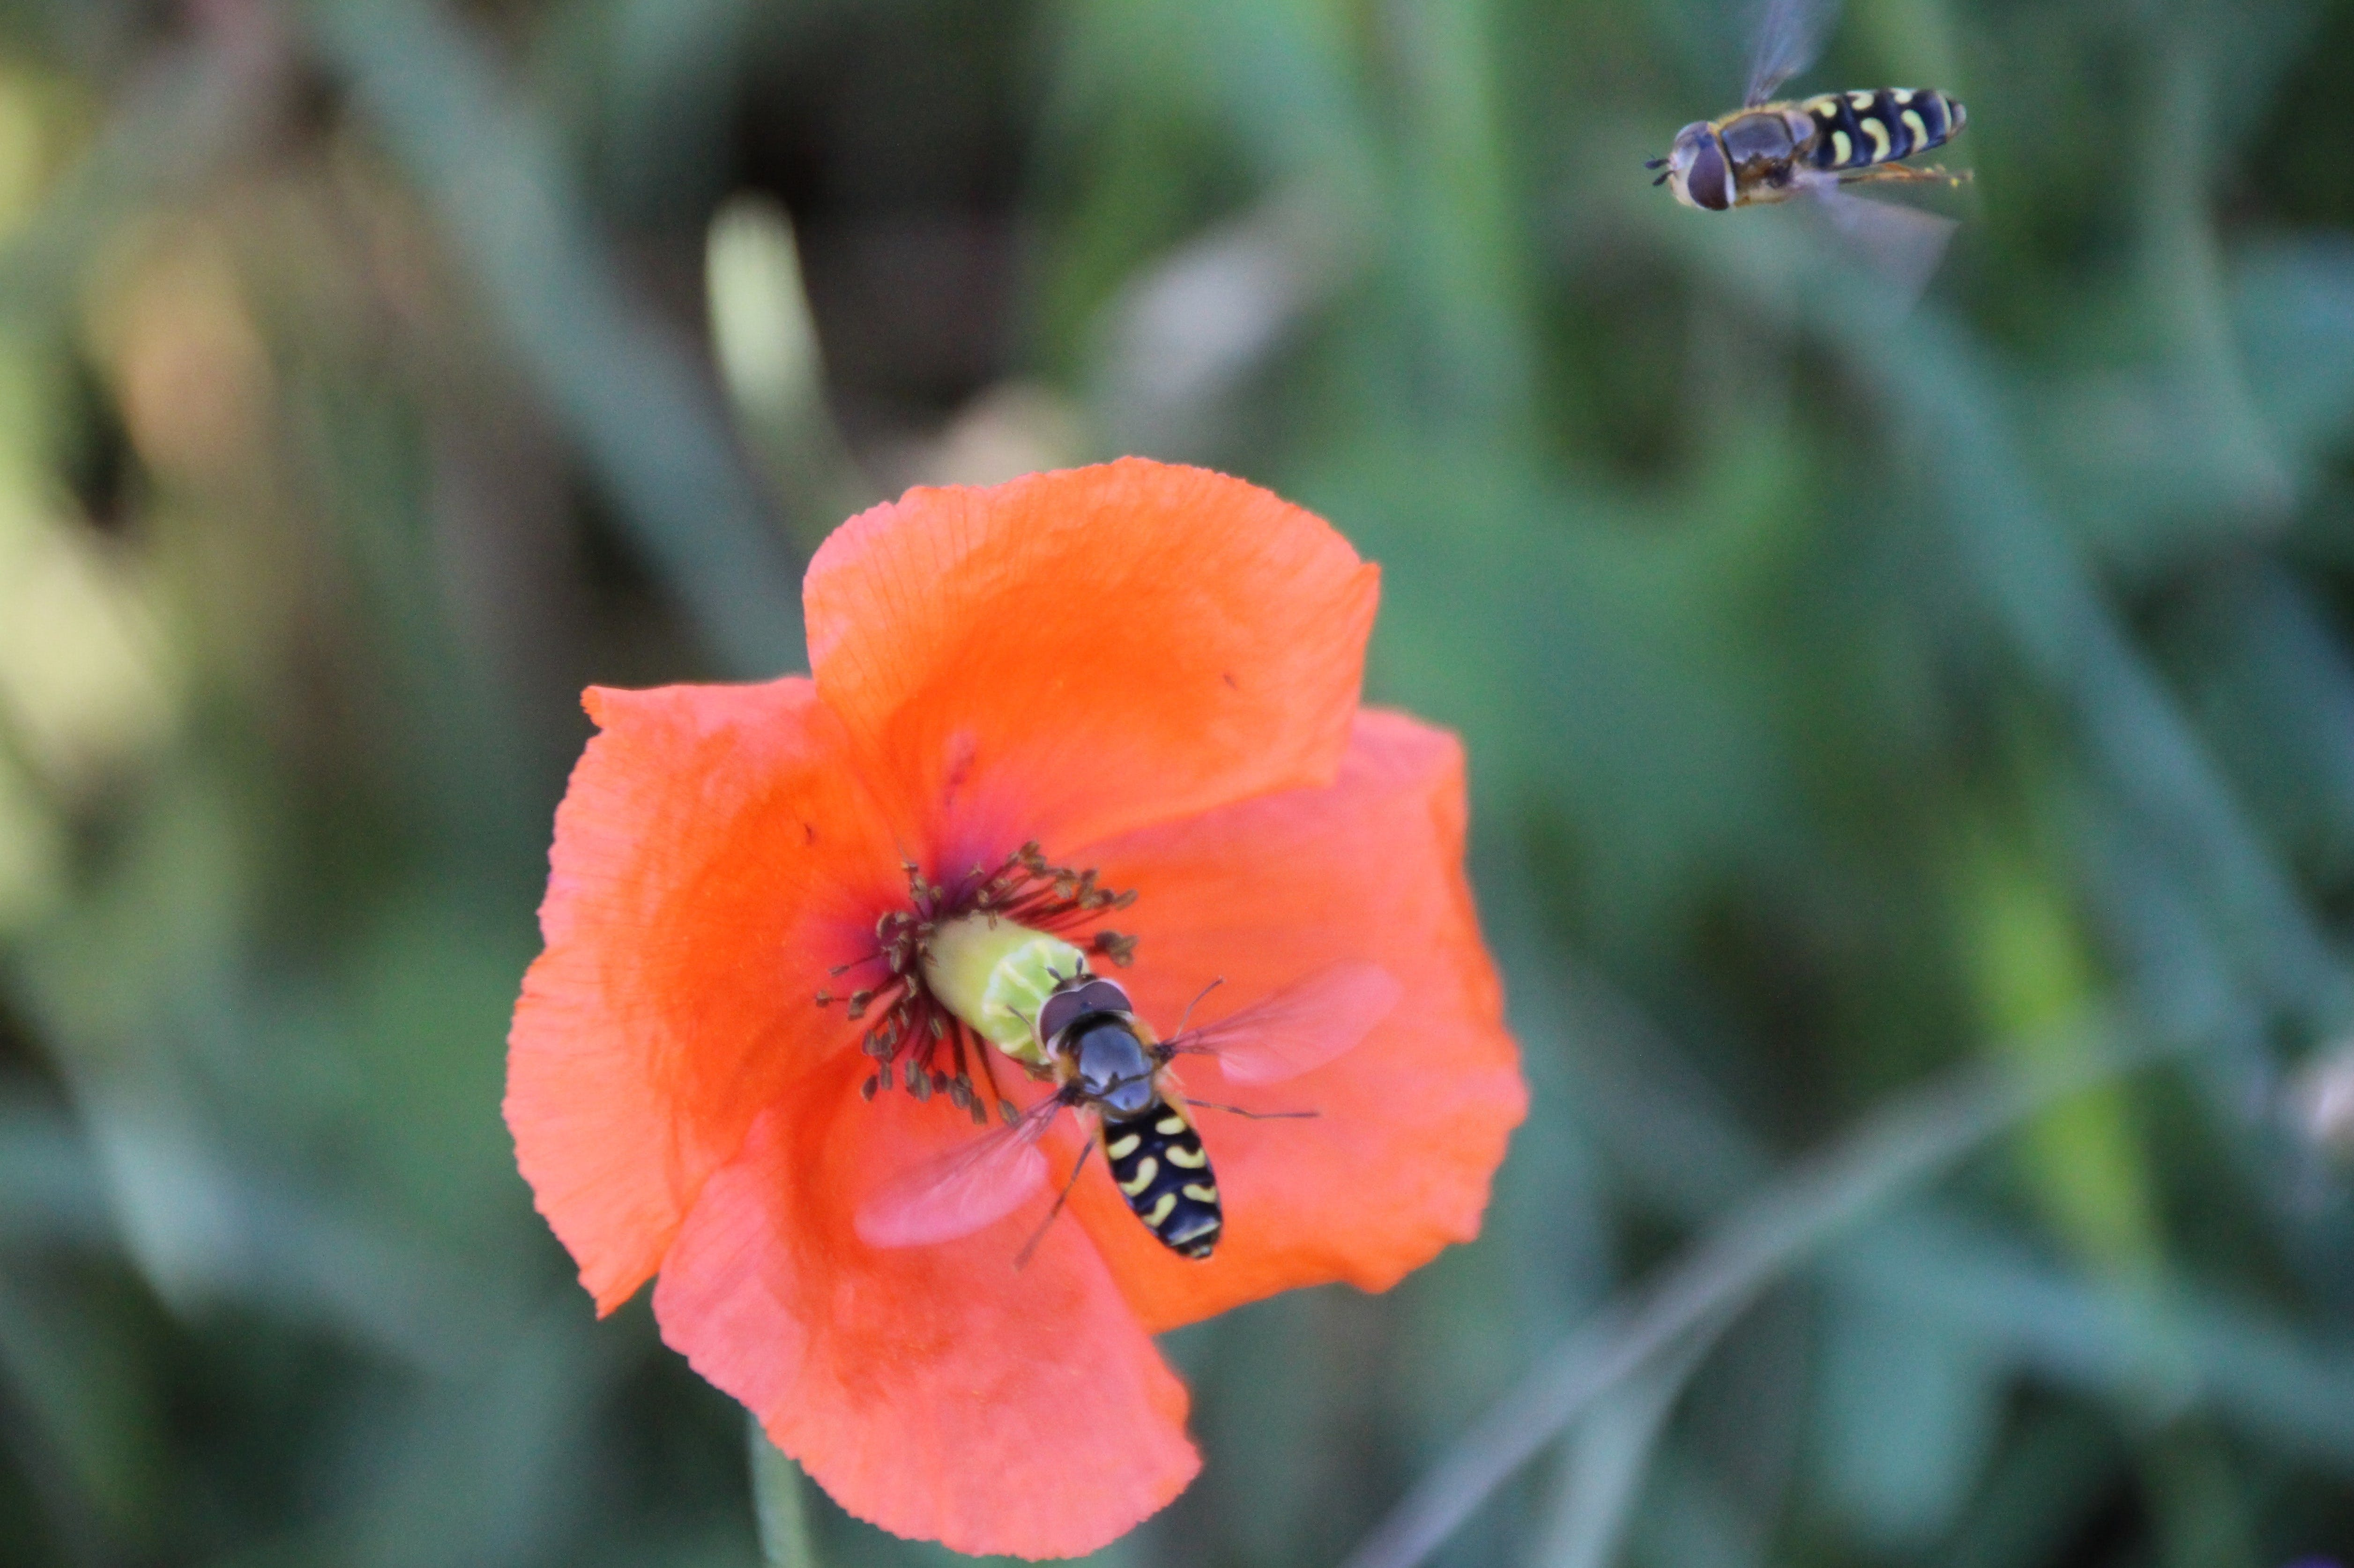 Two Flying Hover Bee Flies Near at Orange Flower